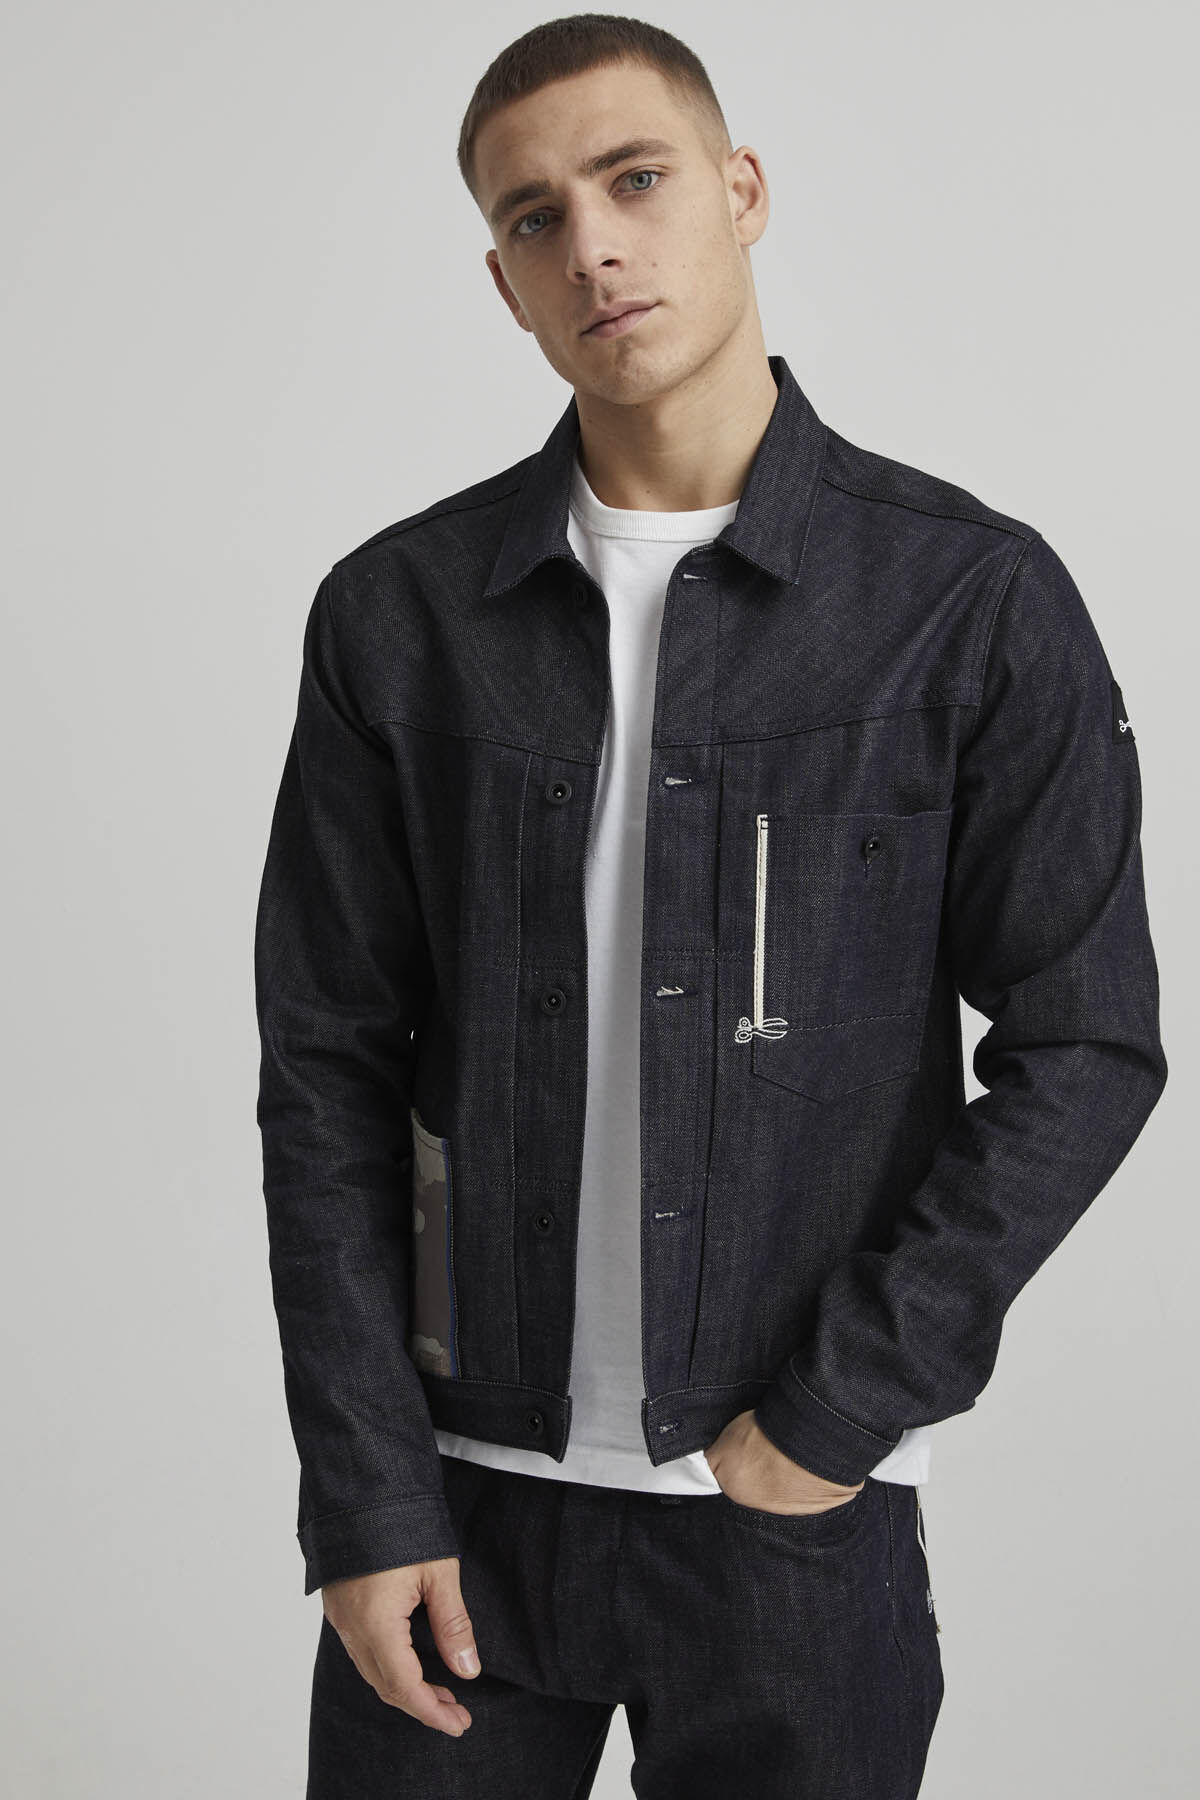 HOMAGE JACKET Raw Selvedge Denim - Boxy Fit